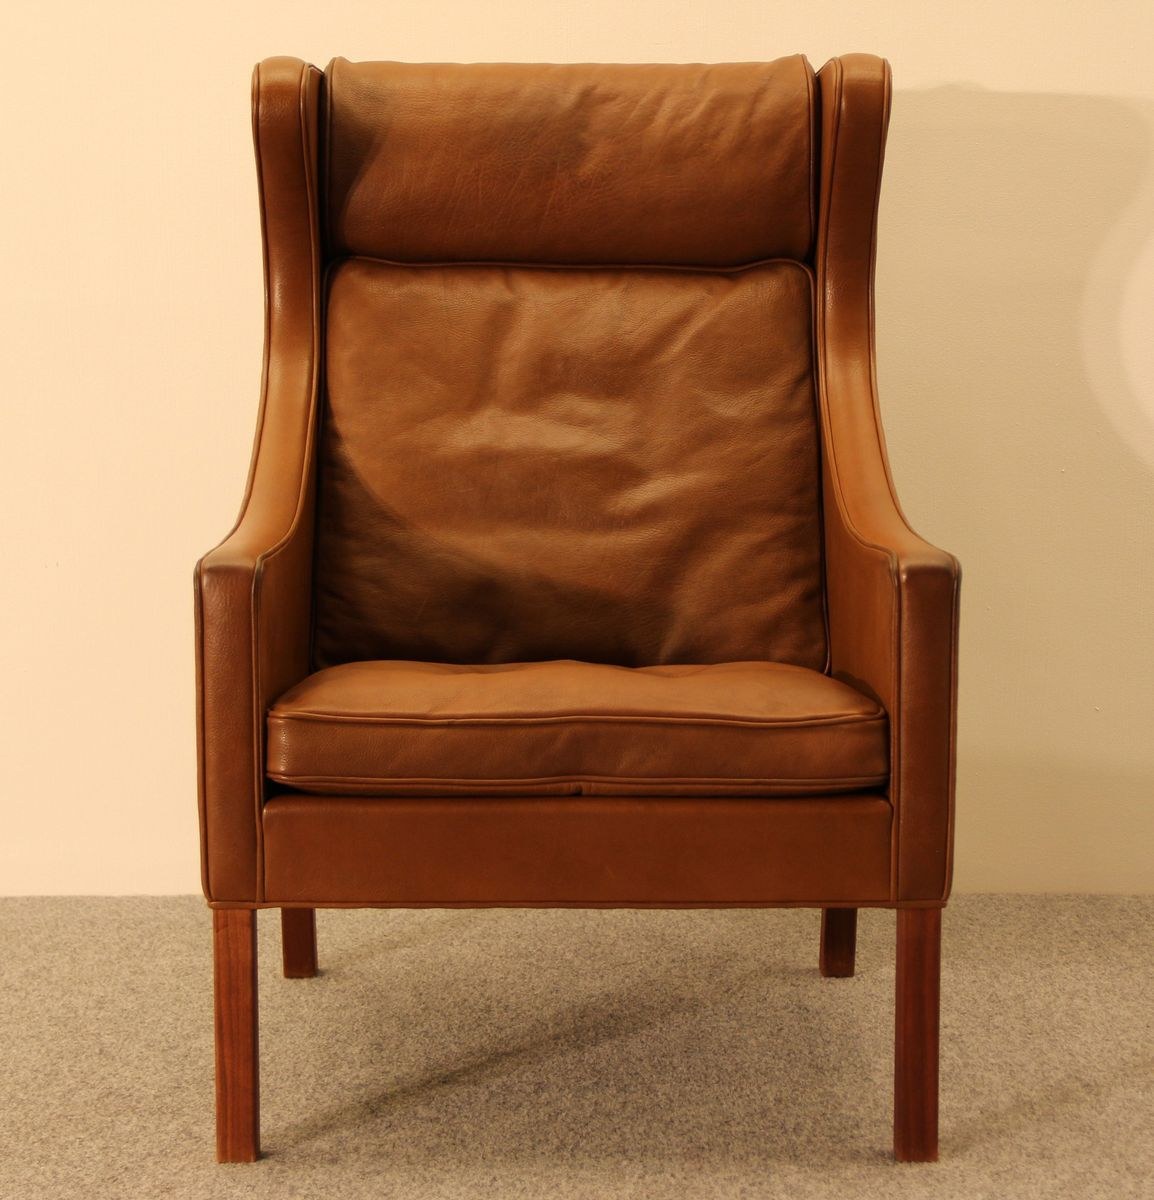 2204 Lounge Chair by Brge Mogensen for Fredericia Stolefabrik